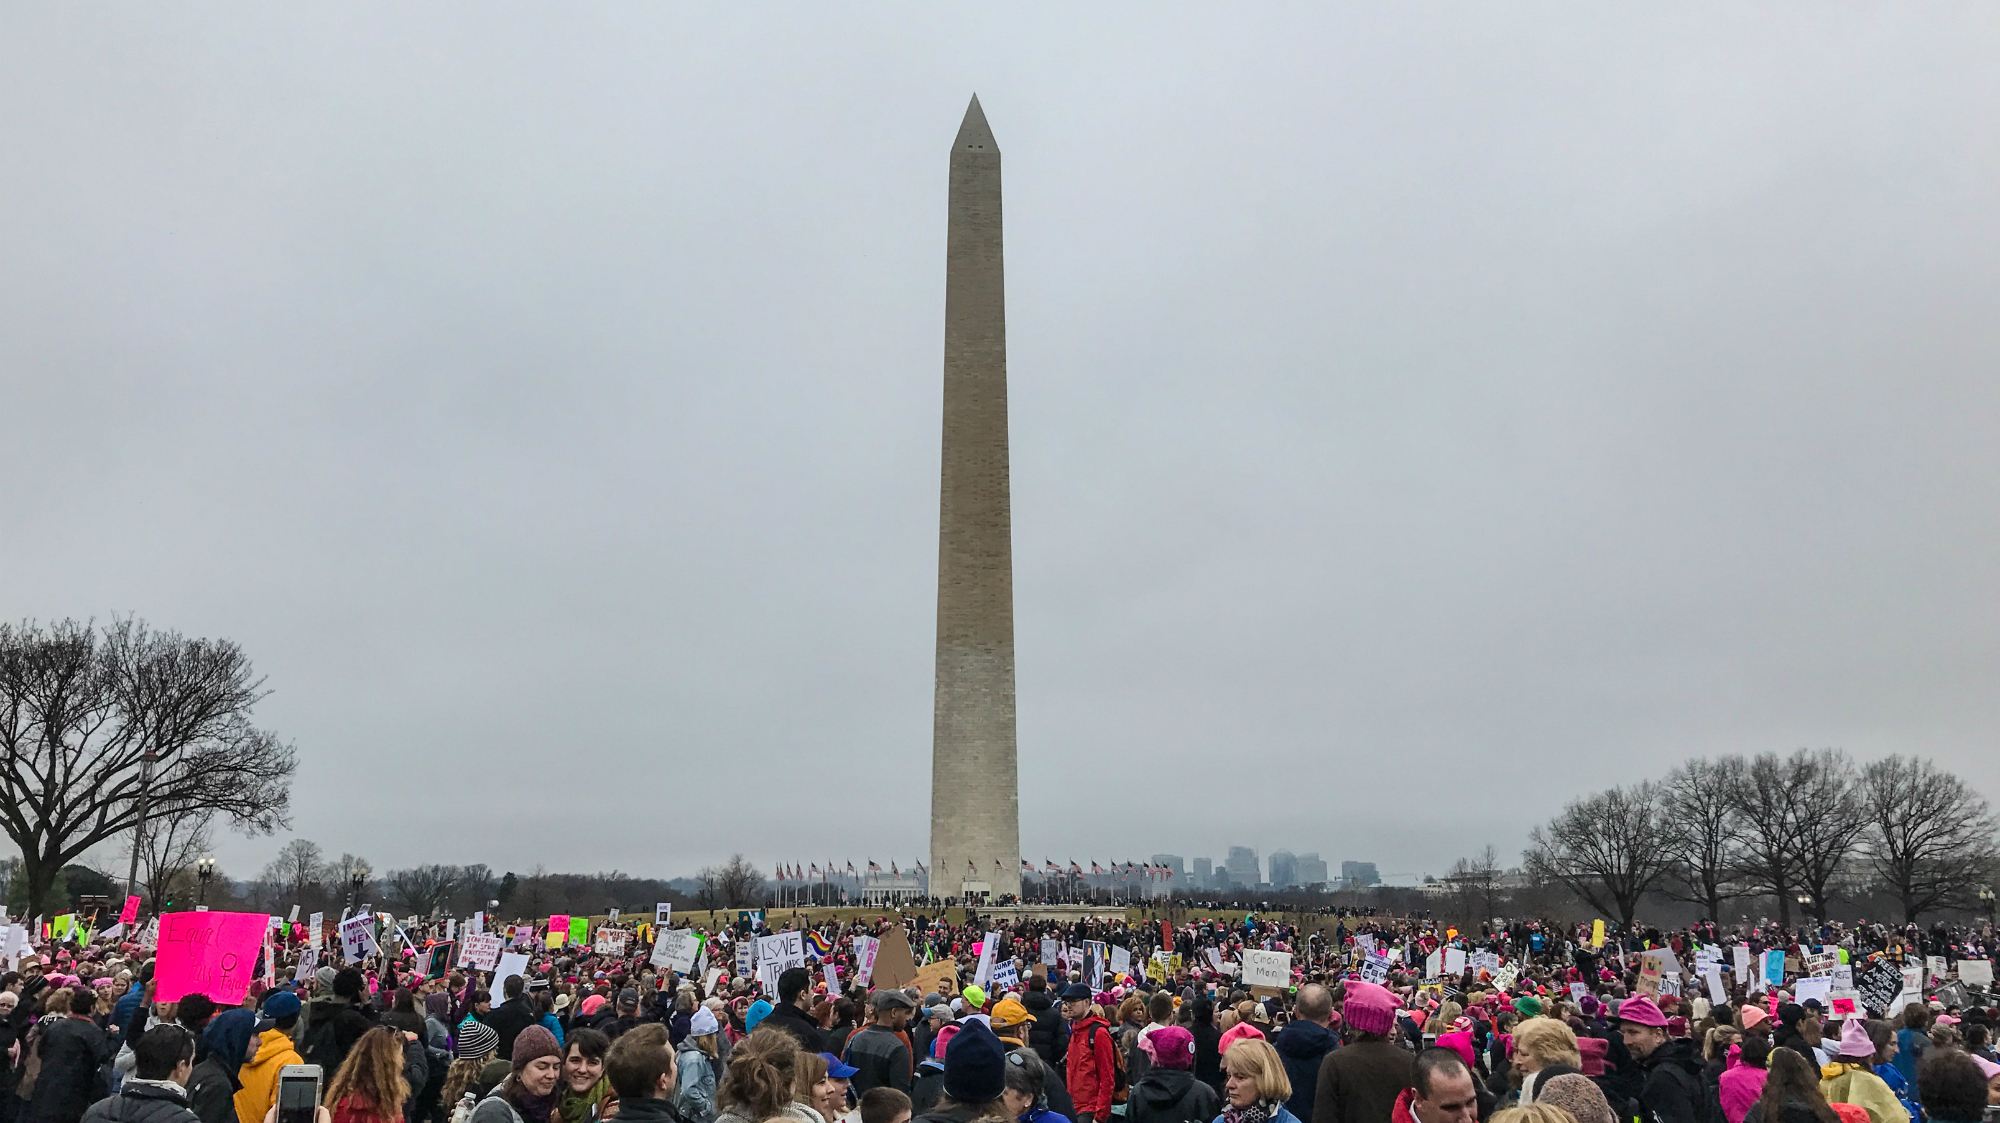 Thousands flood Baltimore for women's march